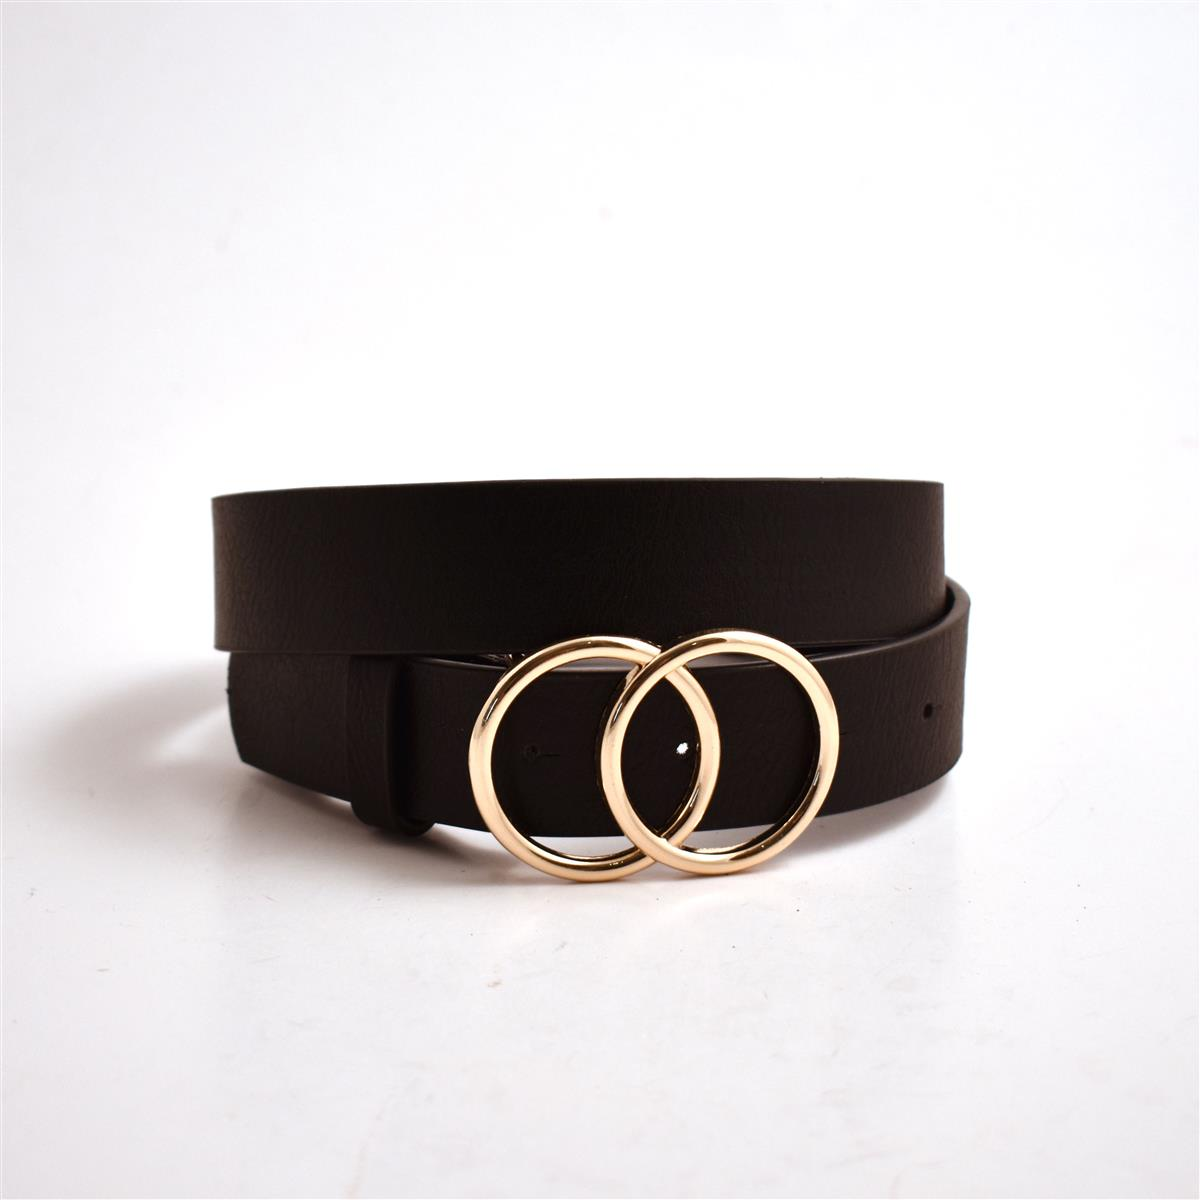 Belt, Double sirkle buckle, black